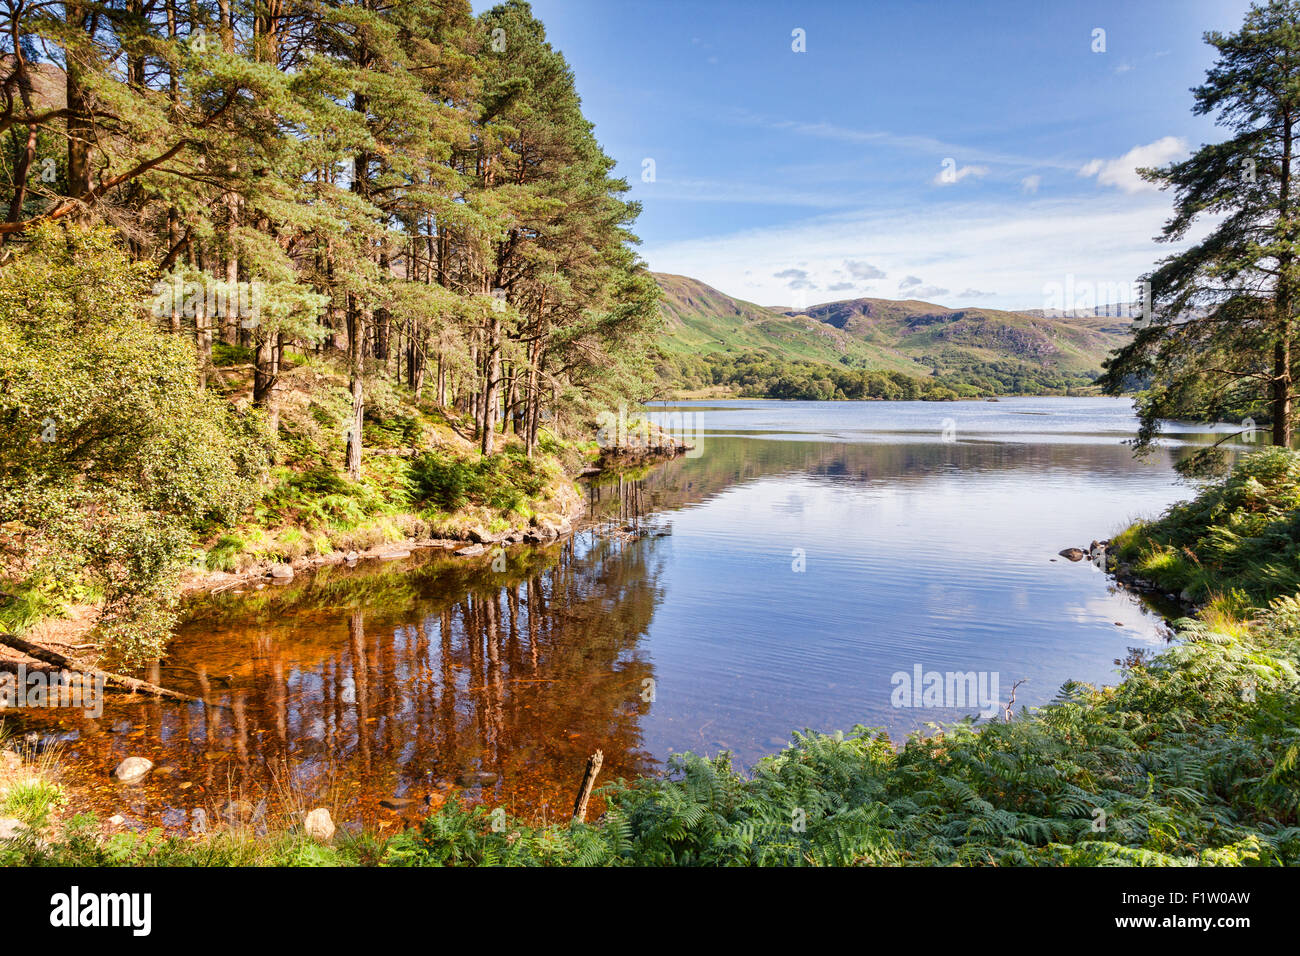 Loch Trool and the Galloway Hills, Dumfries and Galloway, Scotland. - Stock Image